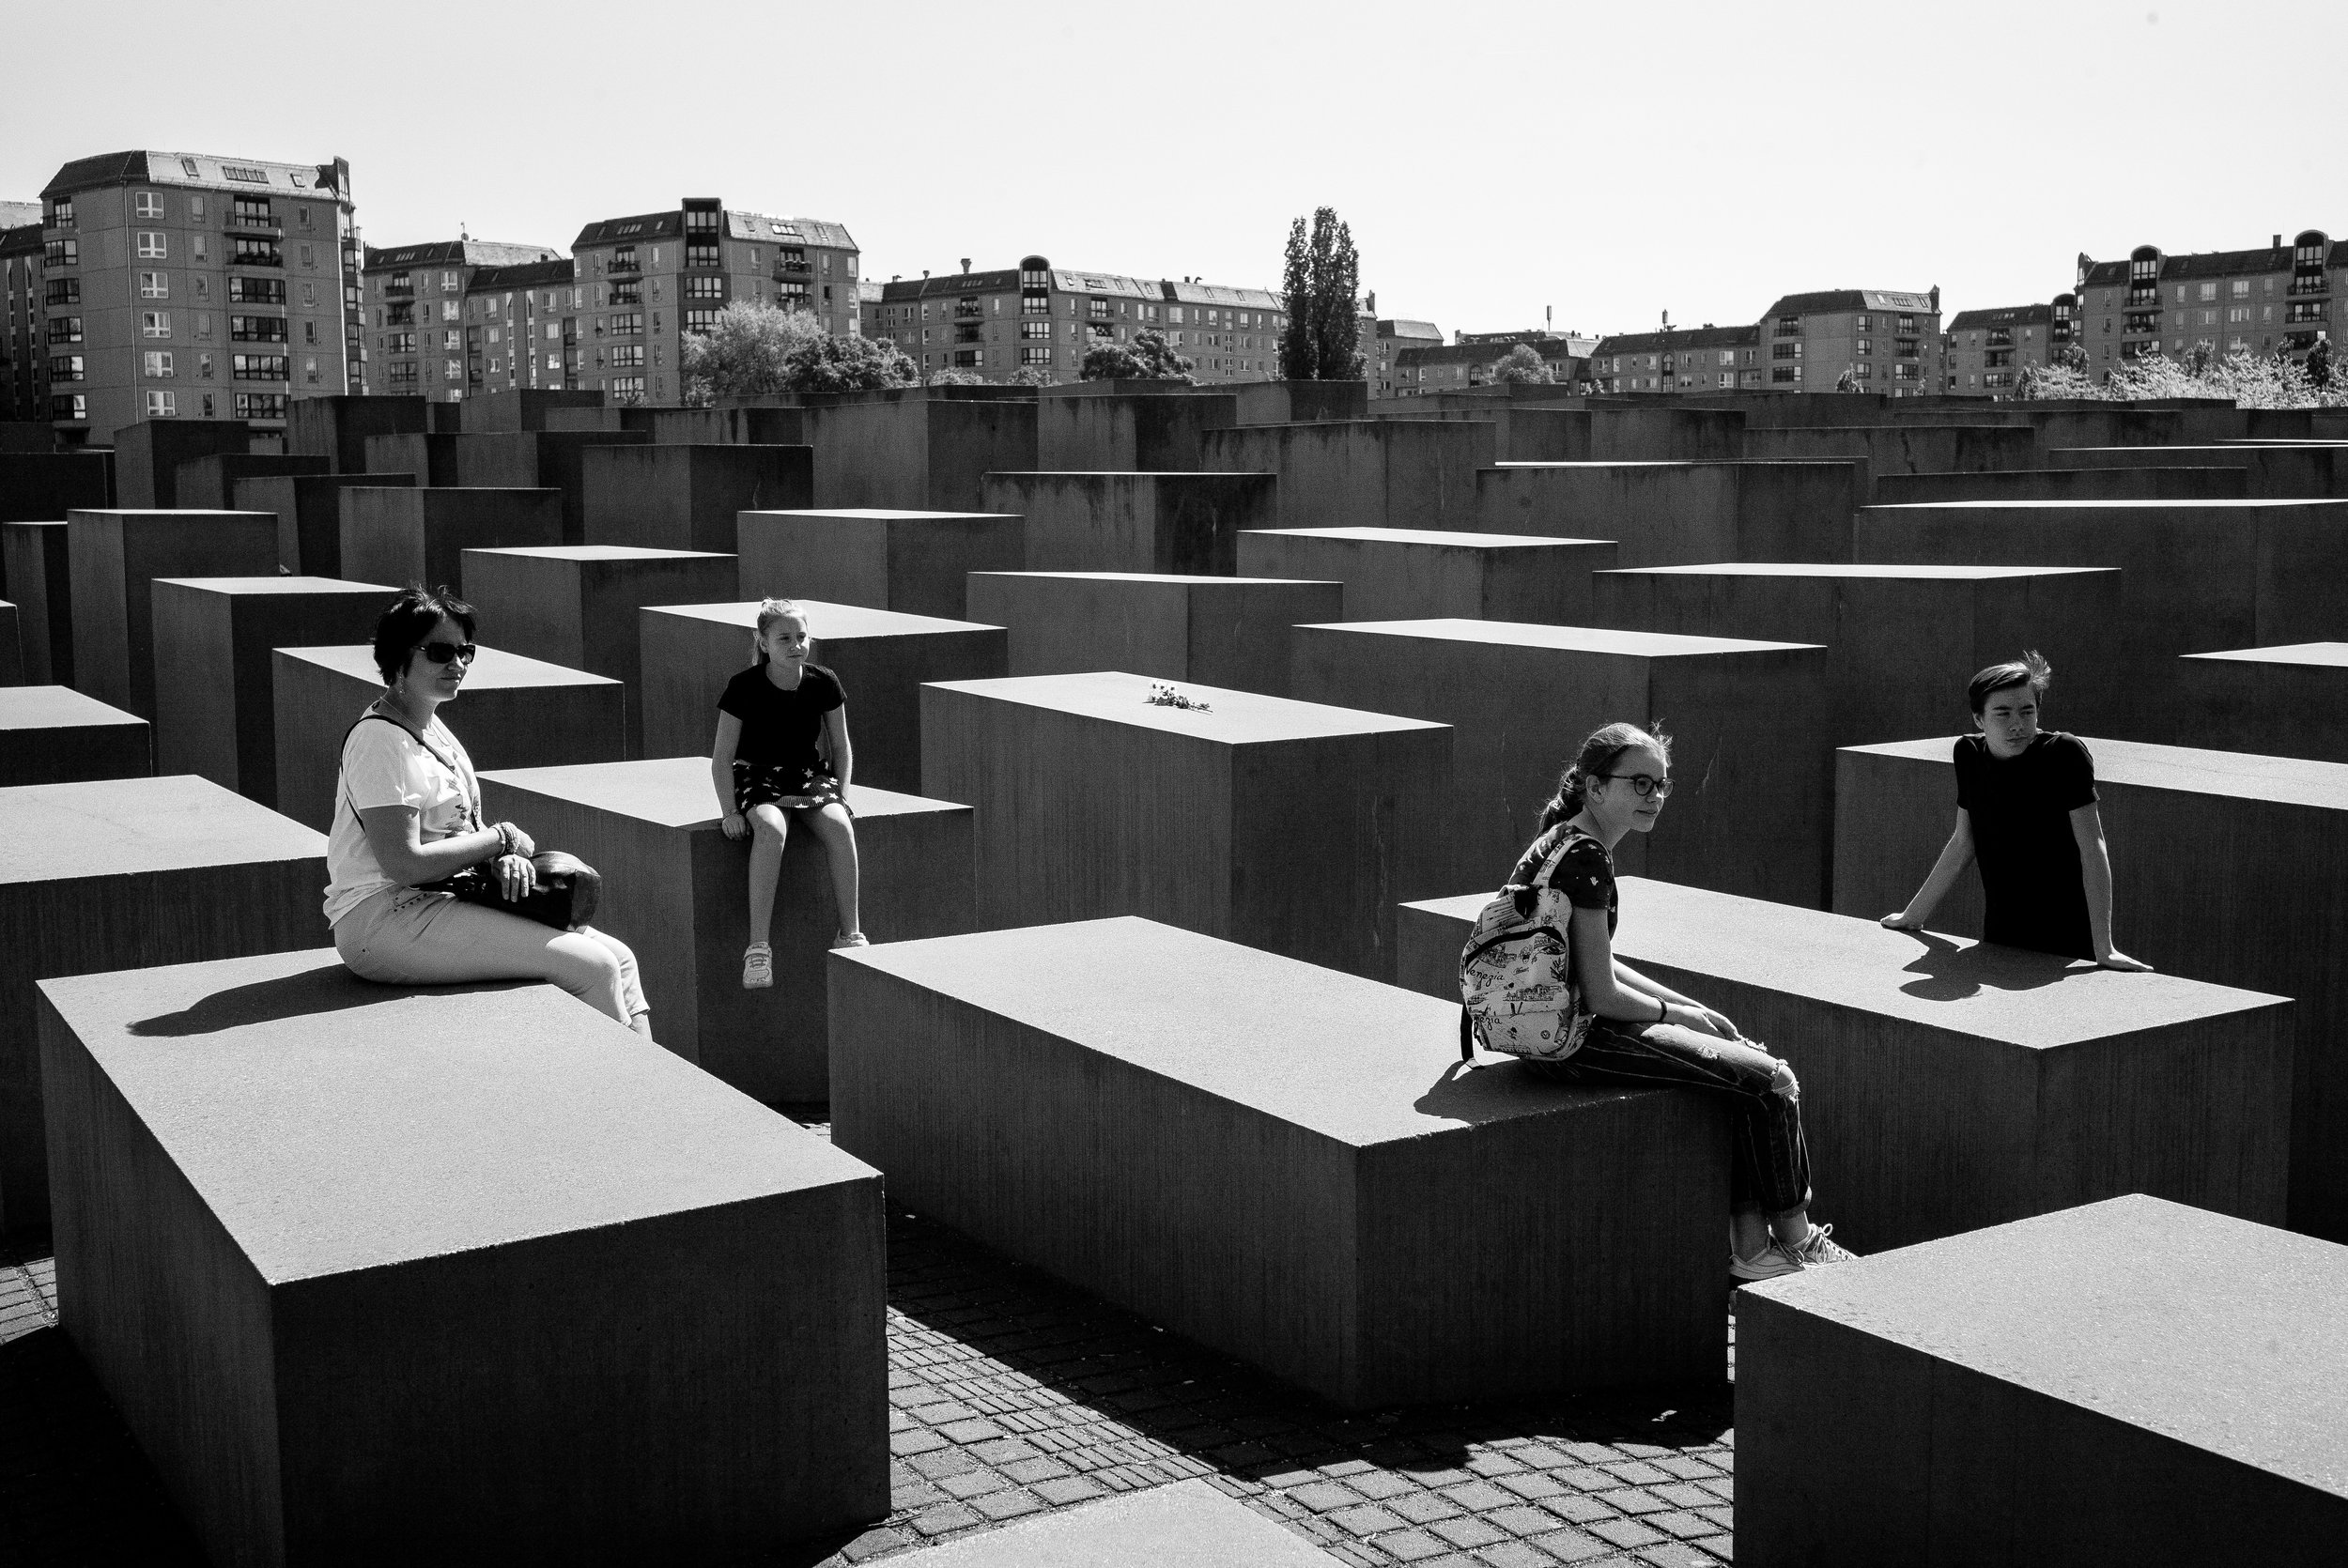 Memorial to the Murdered Jews of Europe, Berlin. Germany. 2019.